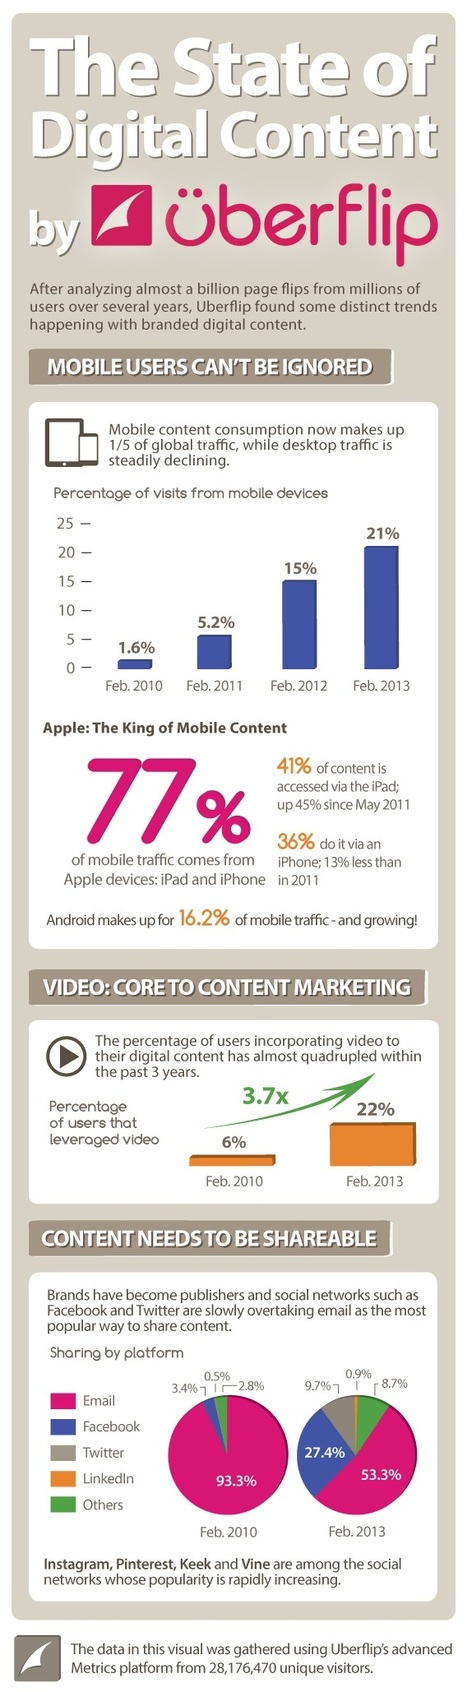 The State of Digital Content [Infographic] - Profs | Leadership & Digital Marketing | Scoop.it